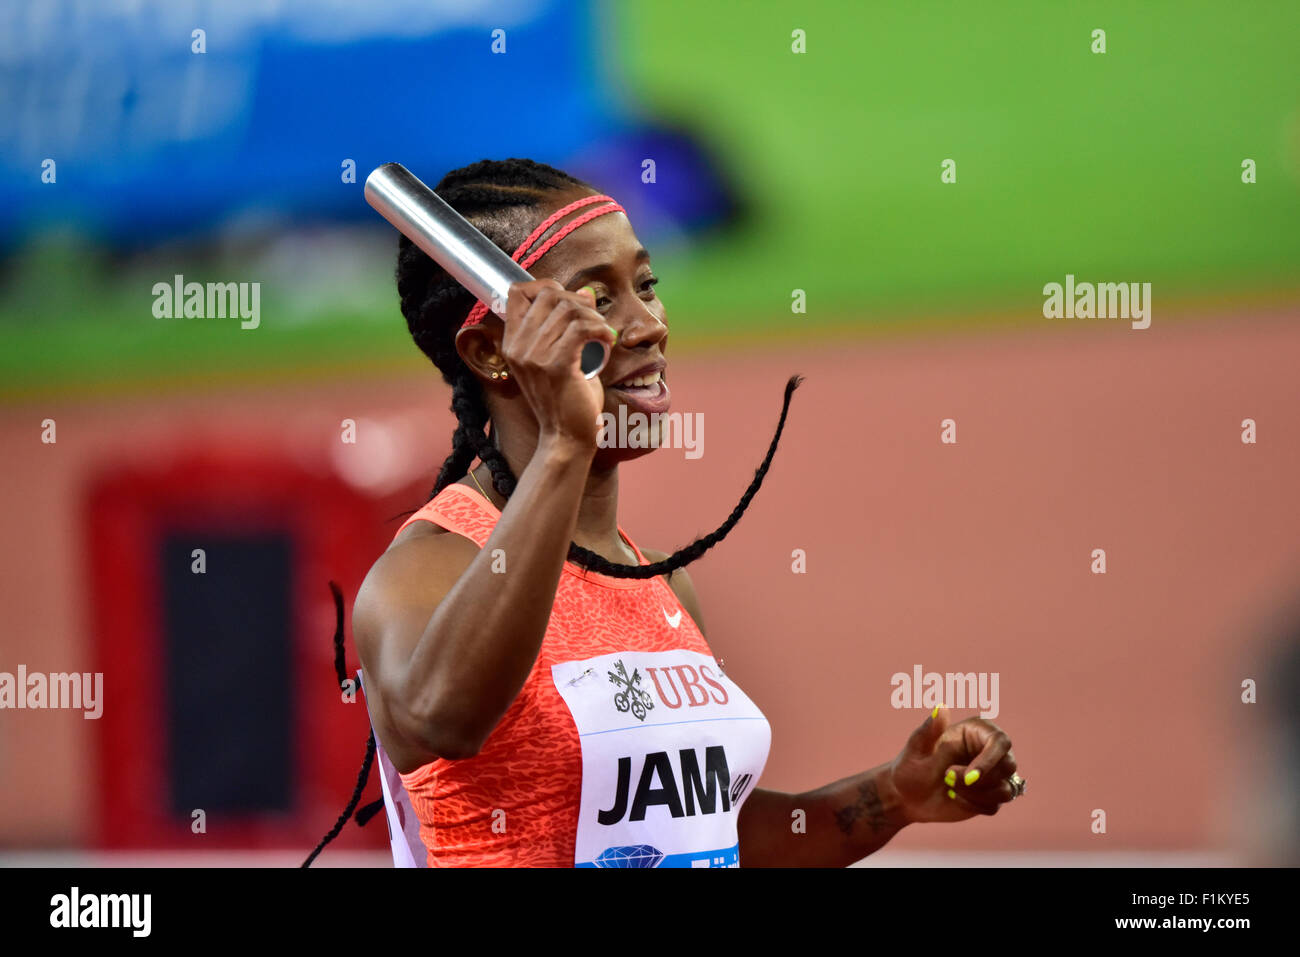 Zurich, Switzerland, 03rd Sep, 2015. Final runner Shelly-Ann Fraser-Pryce (JAM) holds up the baton after Jamaica's - Stock Image